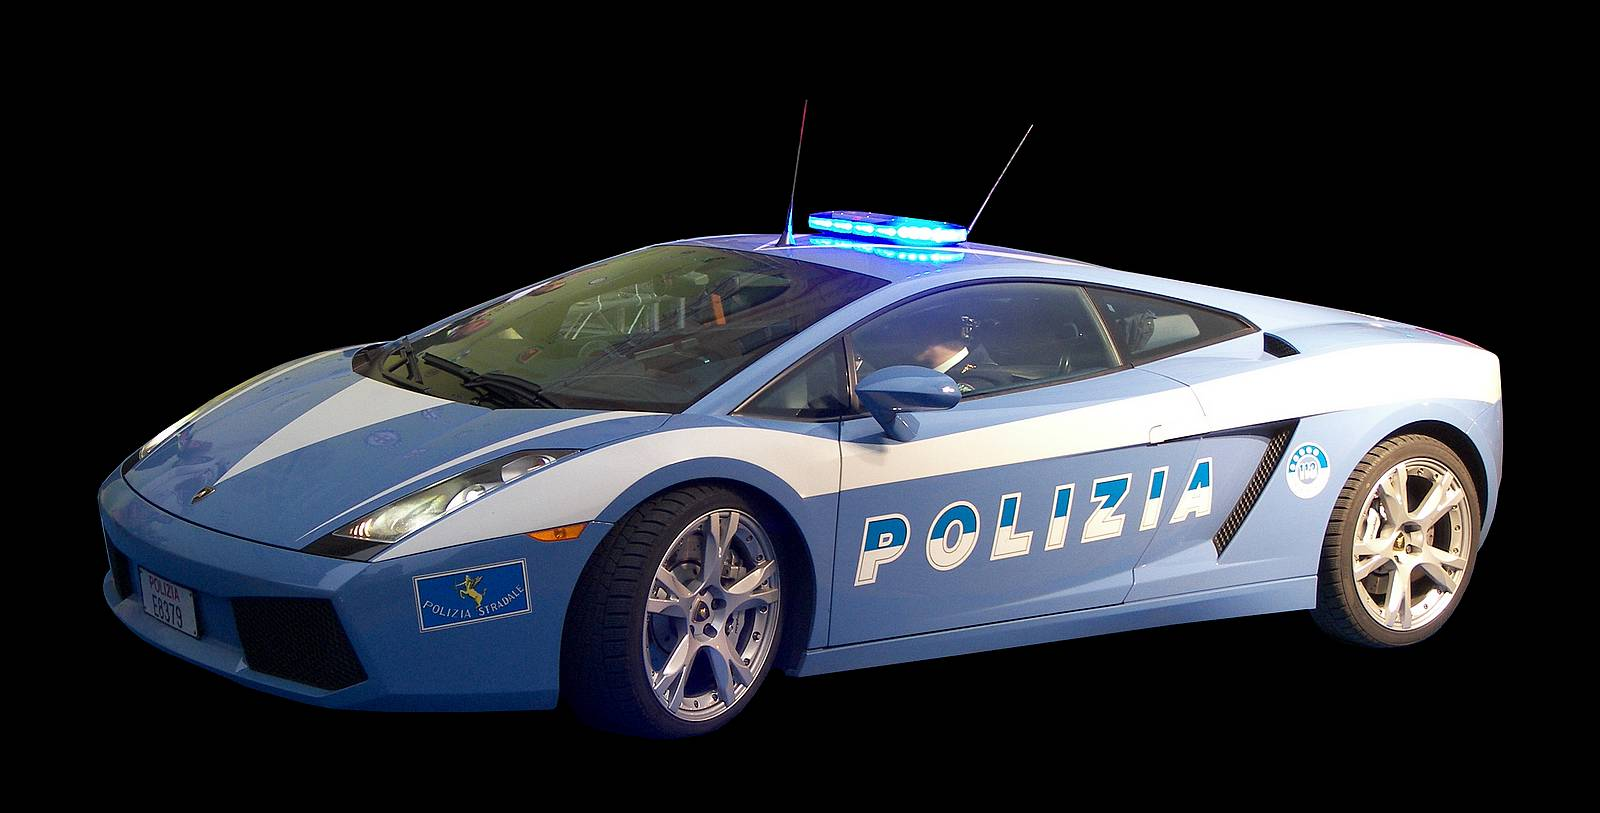 2019 Lamborghini Gallardo Police Car photo - 5